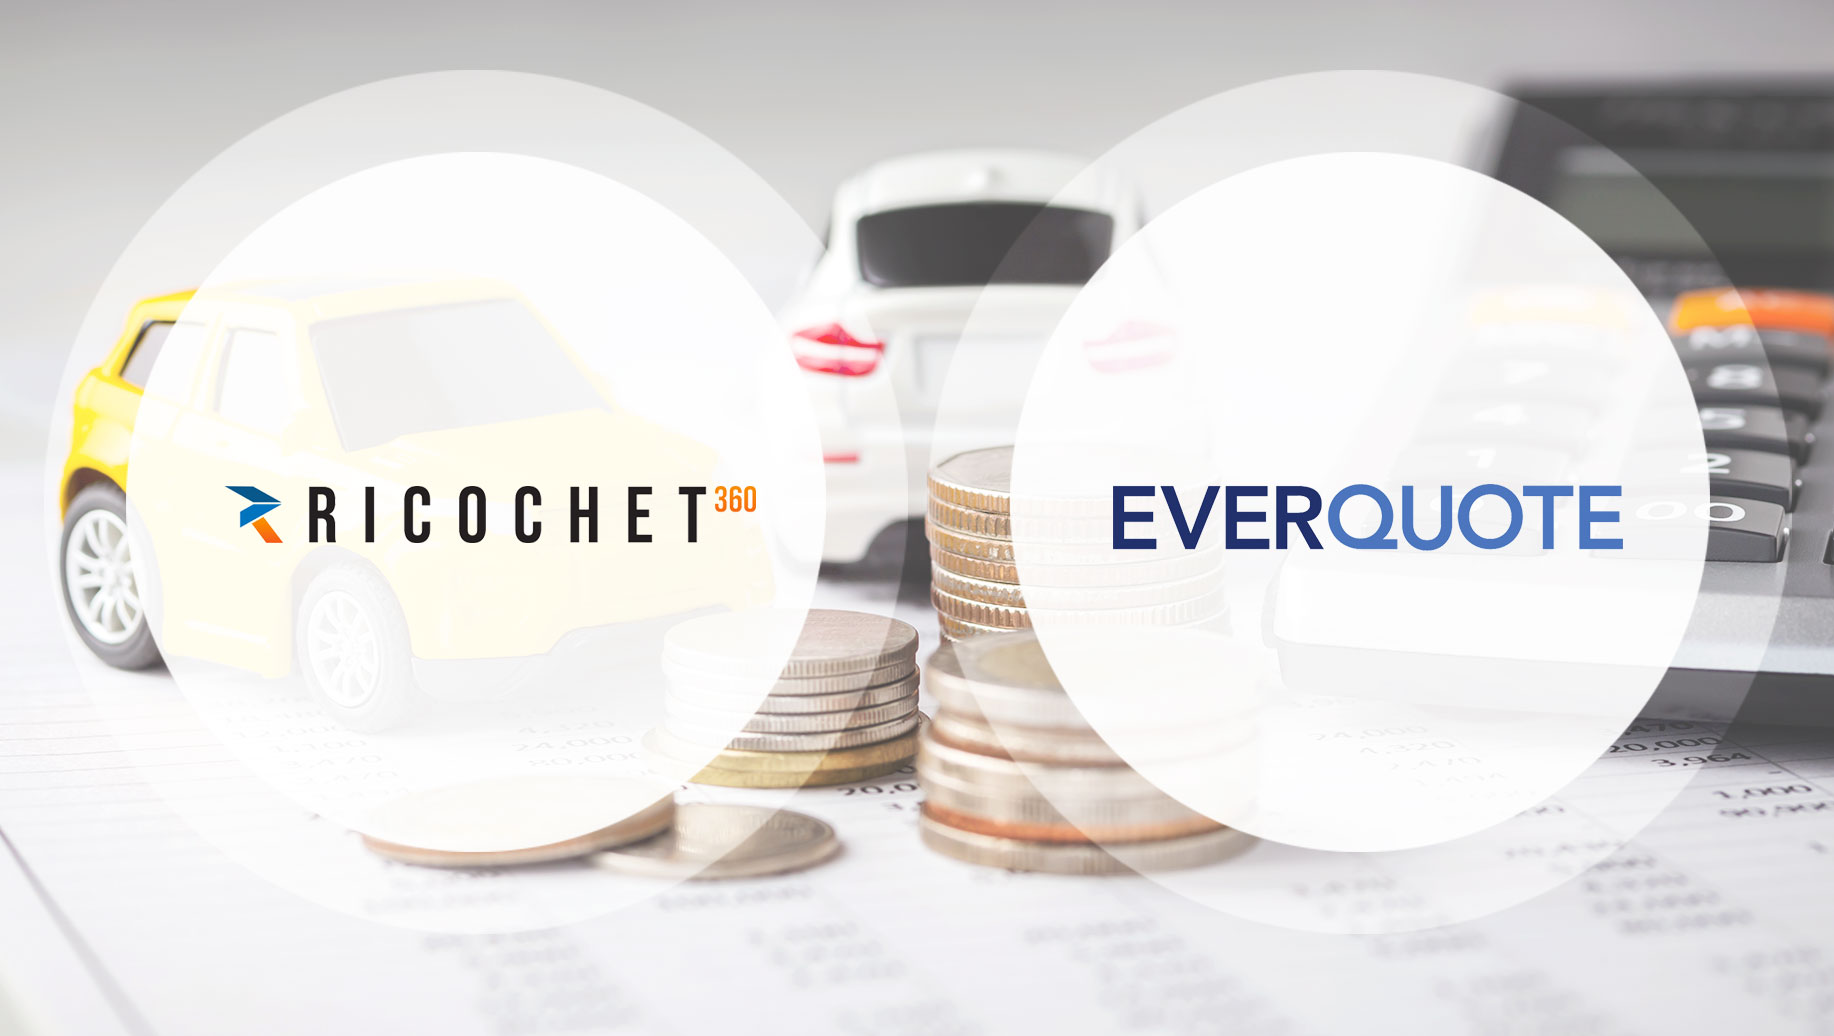 EverQuote Partner Spotlight: Interview with Ricochet360's Brett Schickler